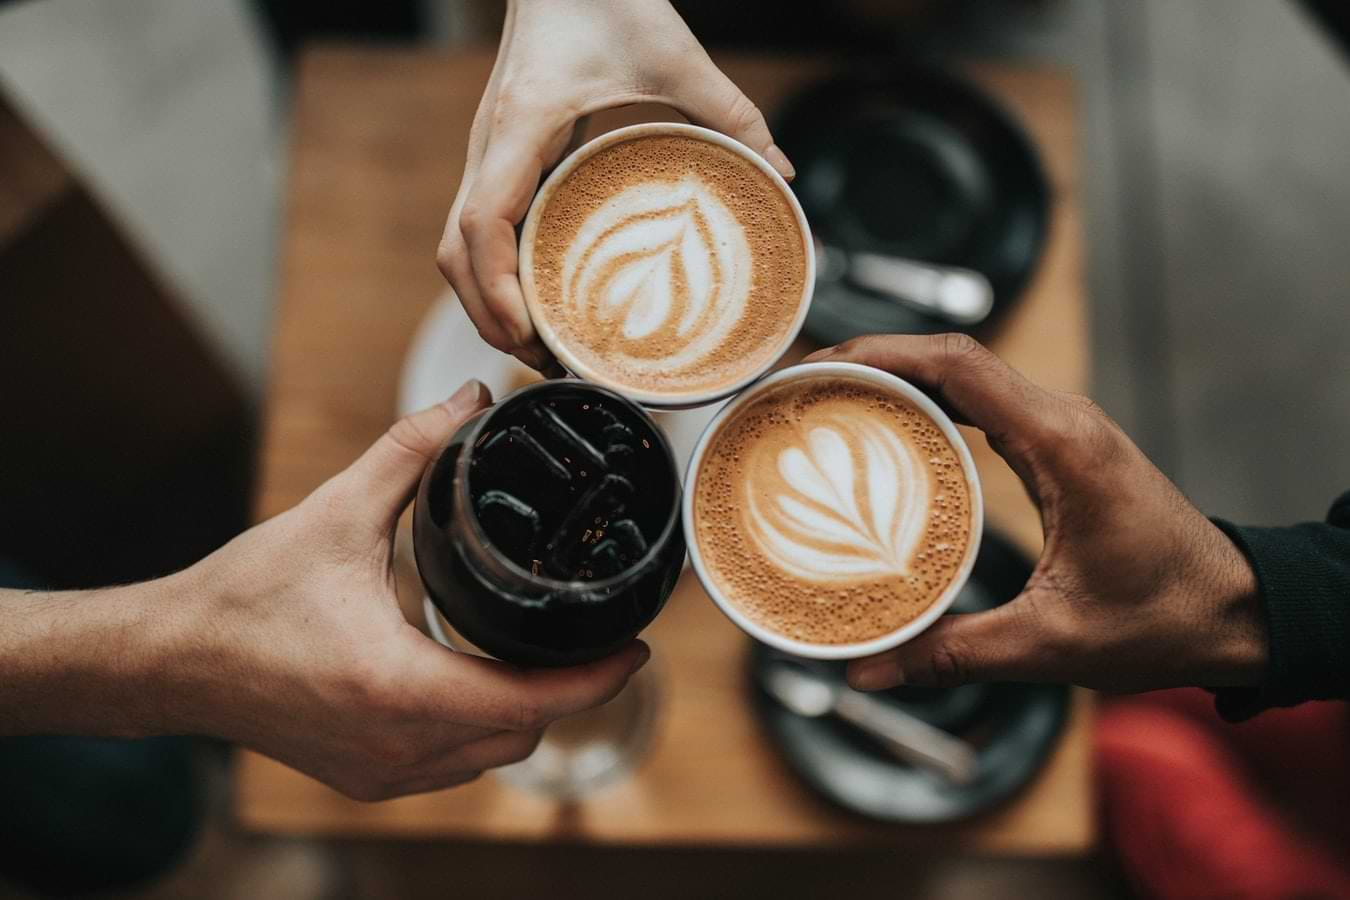 How to enjoy coffee in the best way